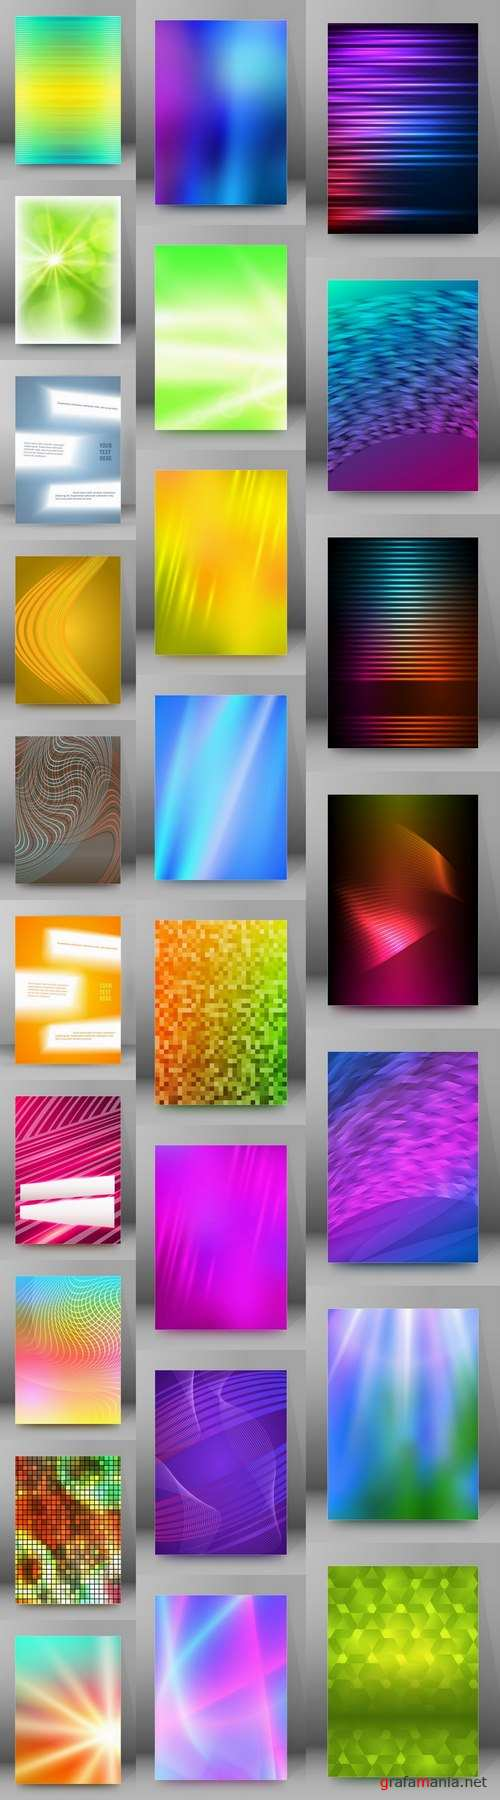 Vector banner picture card flyer poster invitation card 5-25 EPS